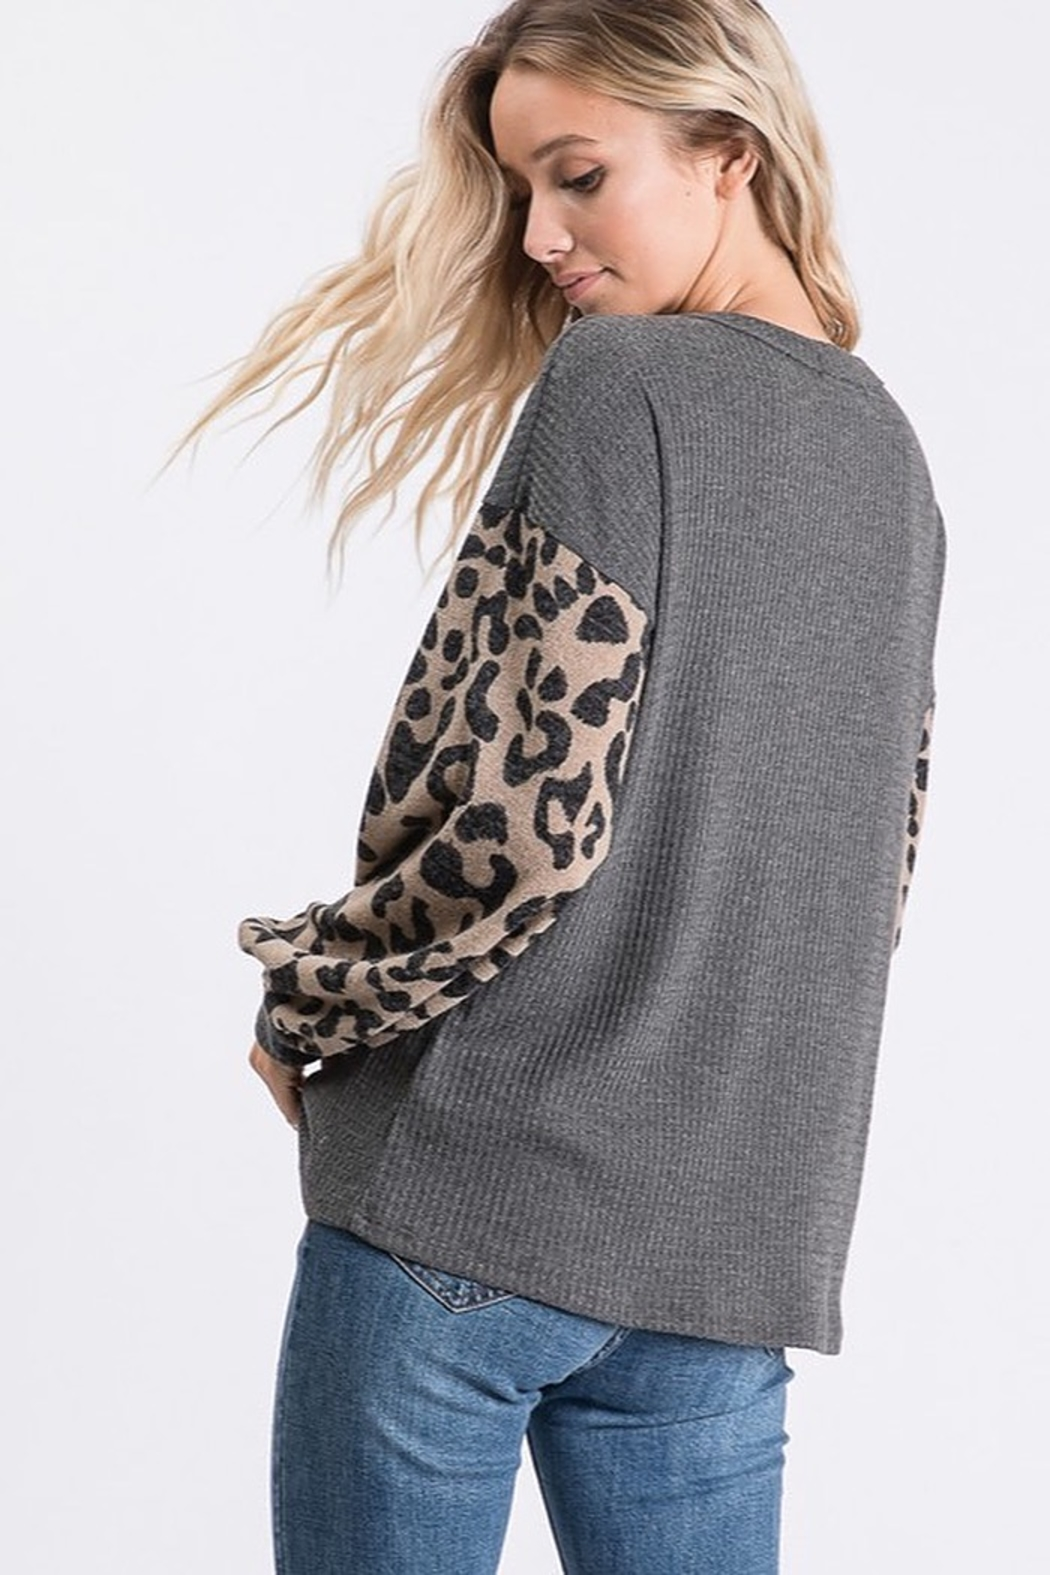 Bibi THERMAL WAFFLE TOP WITH LEOPARD PUFF SLEEVE - Front Full Image